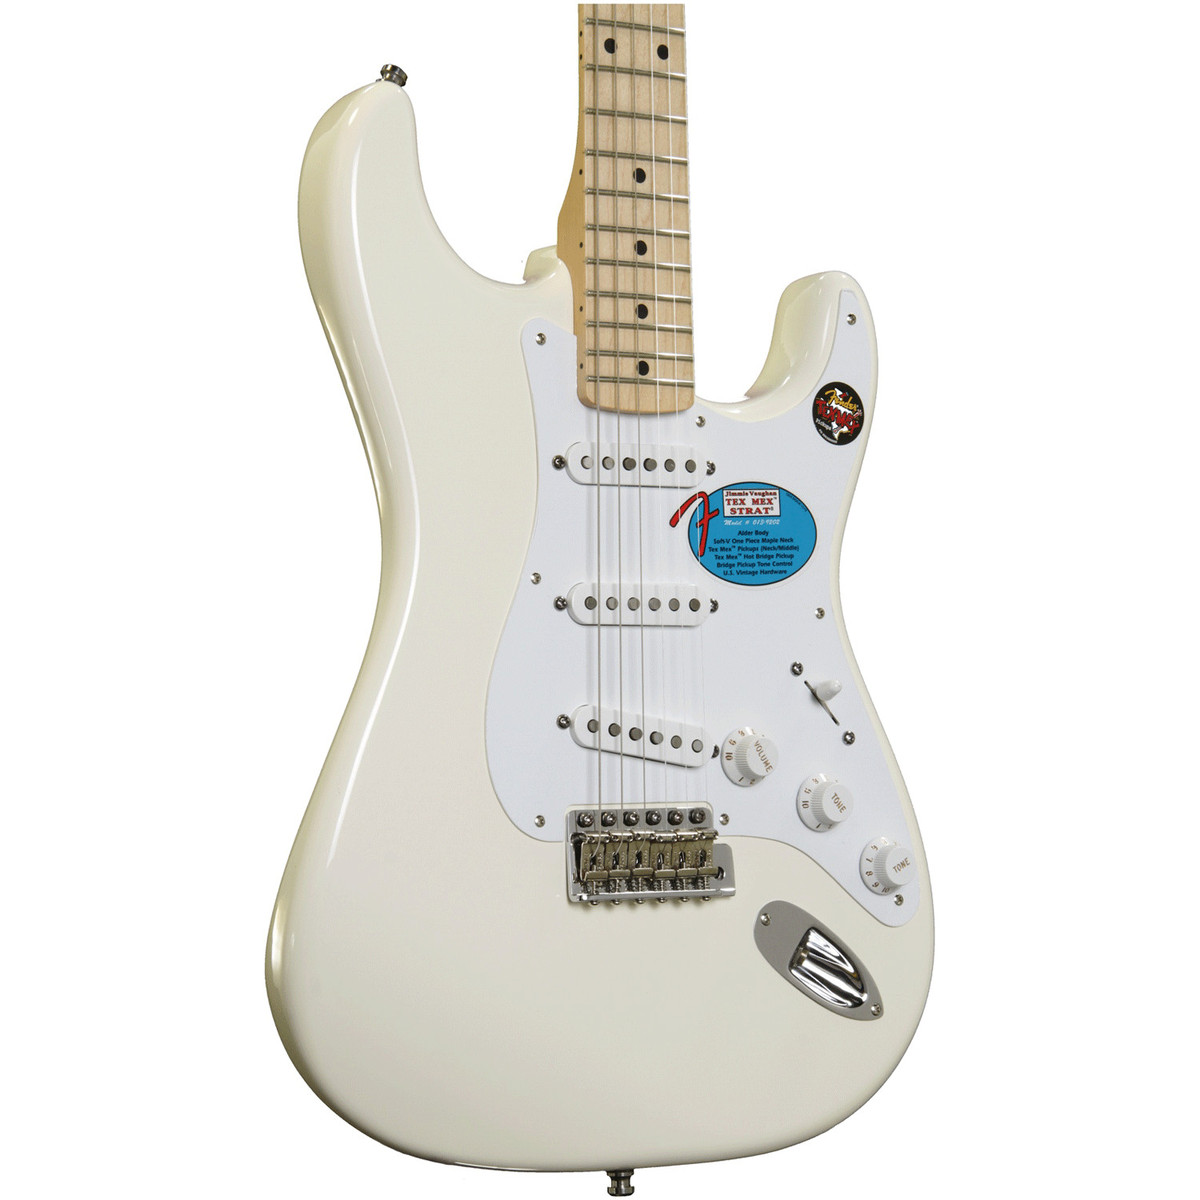 Jimmie Vaughn Fender Stratocaster Wiring Diagrams Tex Mex Pickup Diagram Vaughan Guitar Olympic White